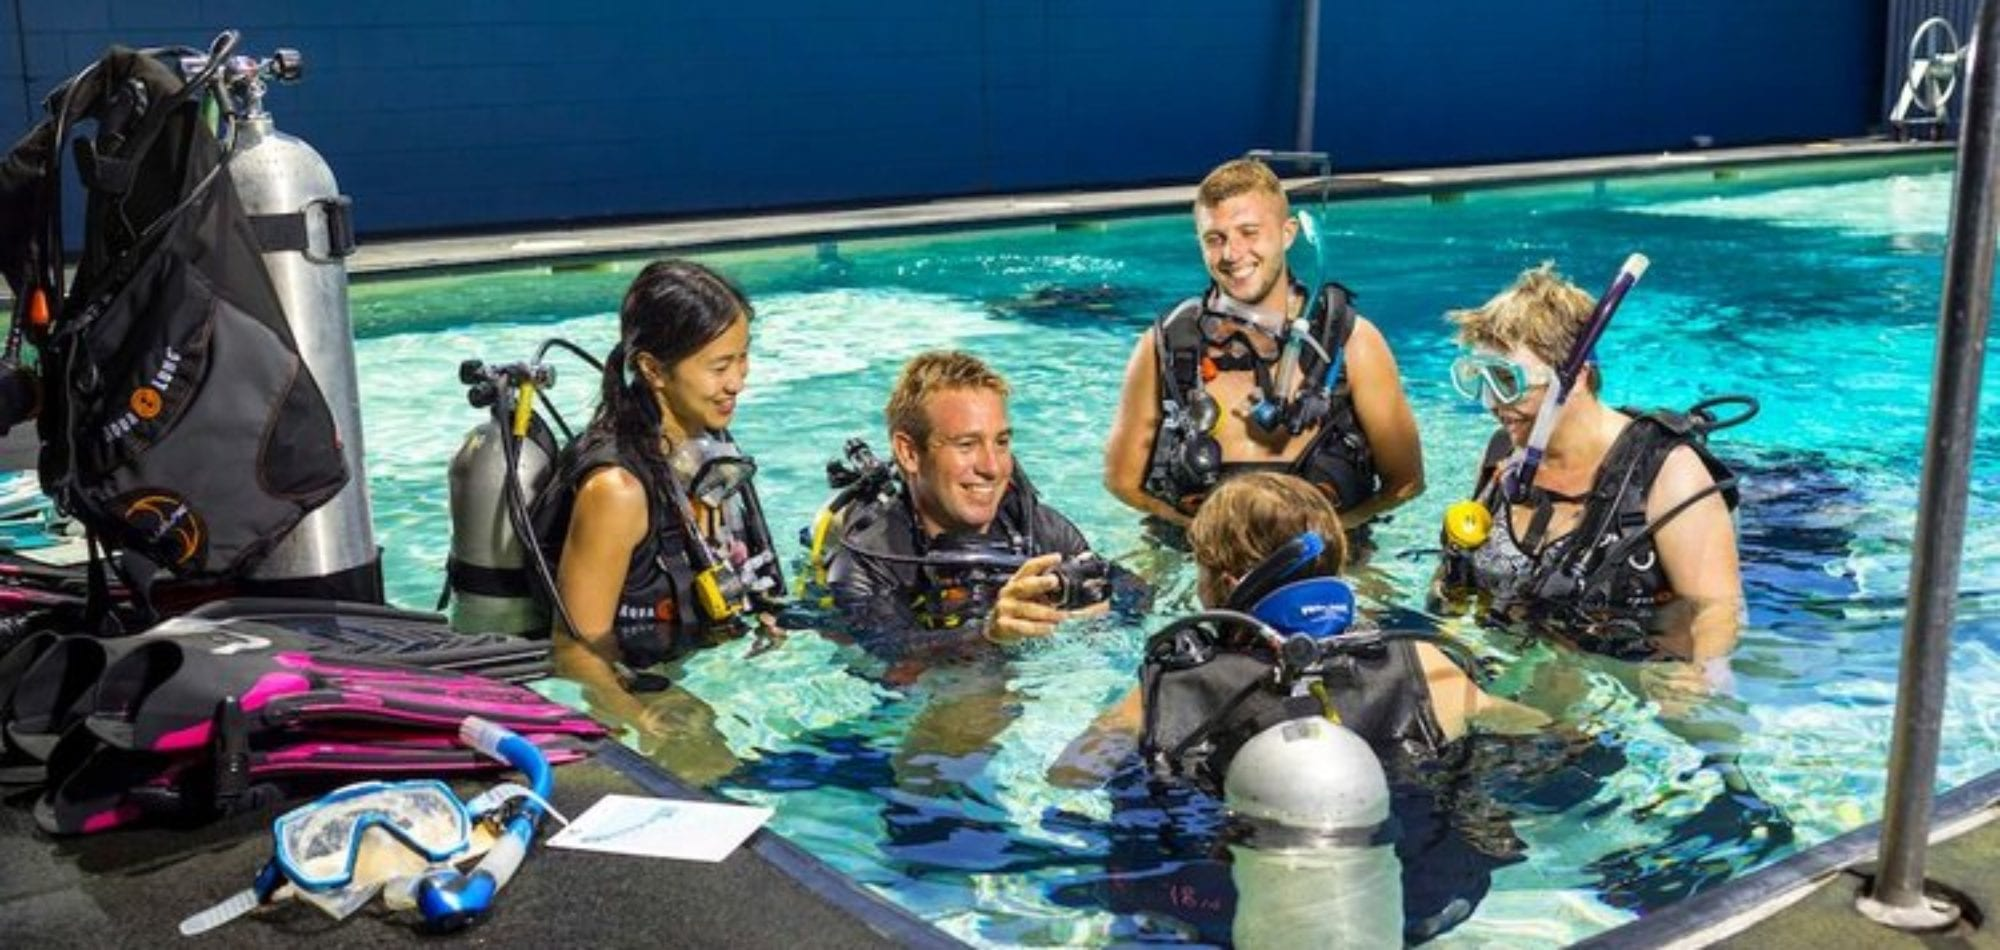 Cairns, learn to scuba dive - students in Pro Dive Cairns training pool